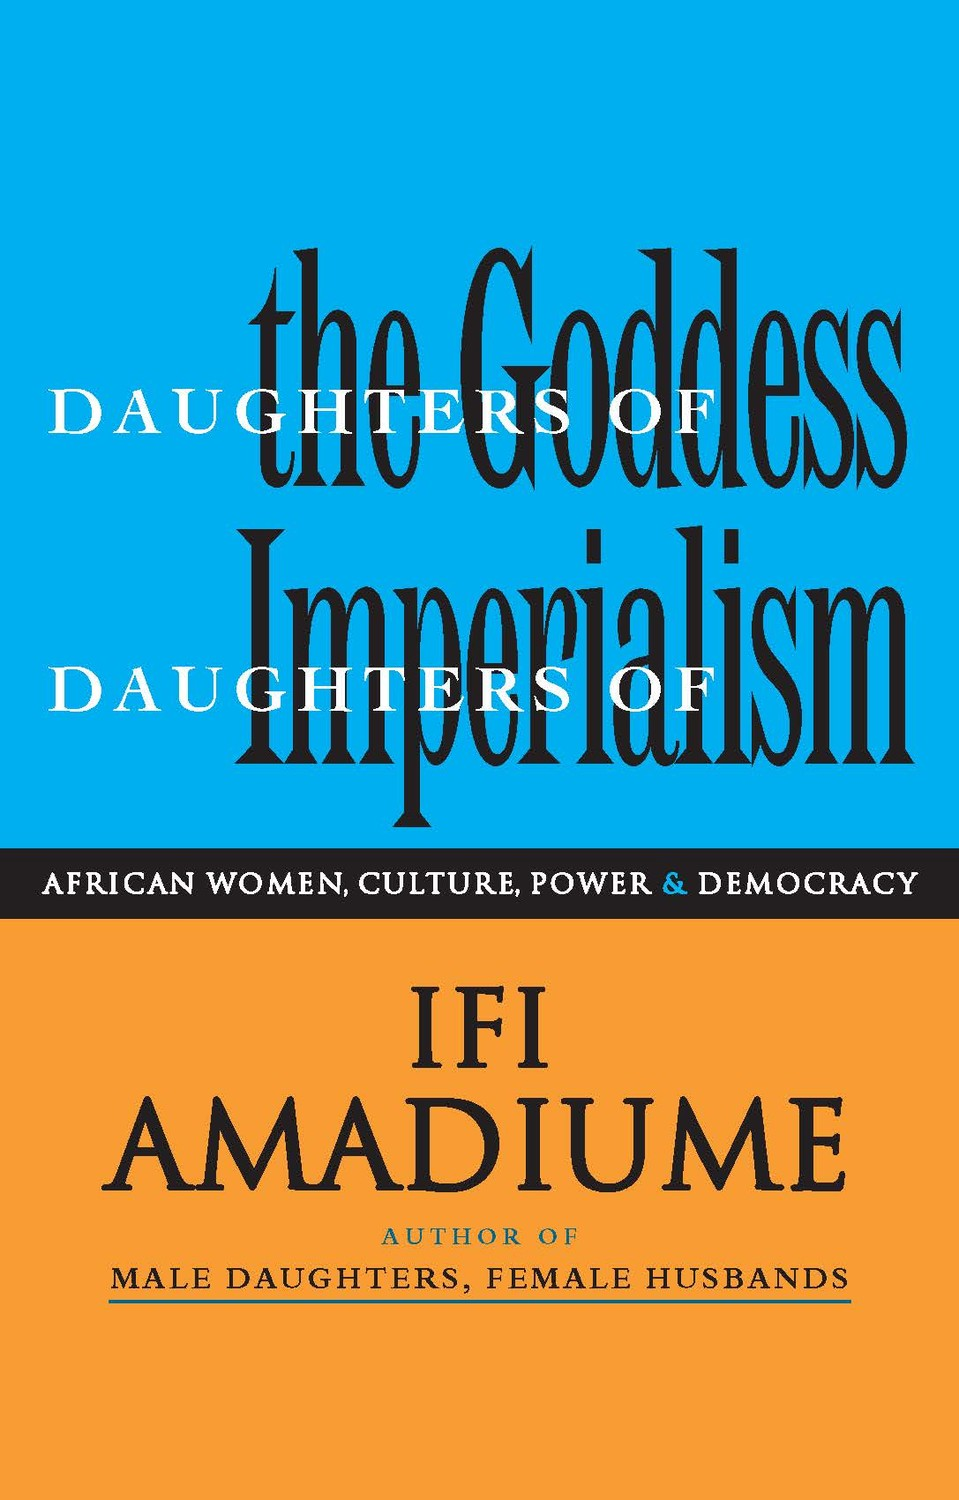 Daughters of the Goddess, Daughters of Imperialism